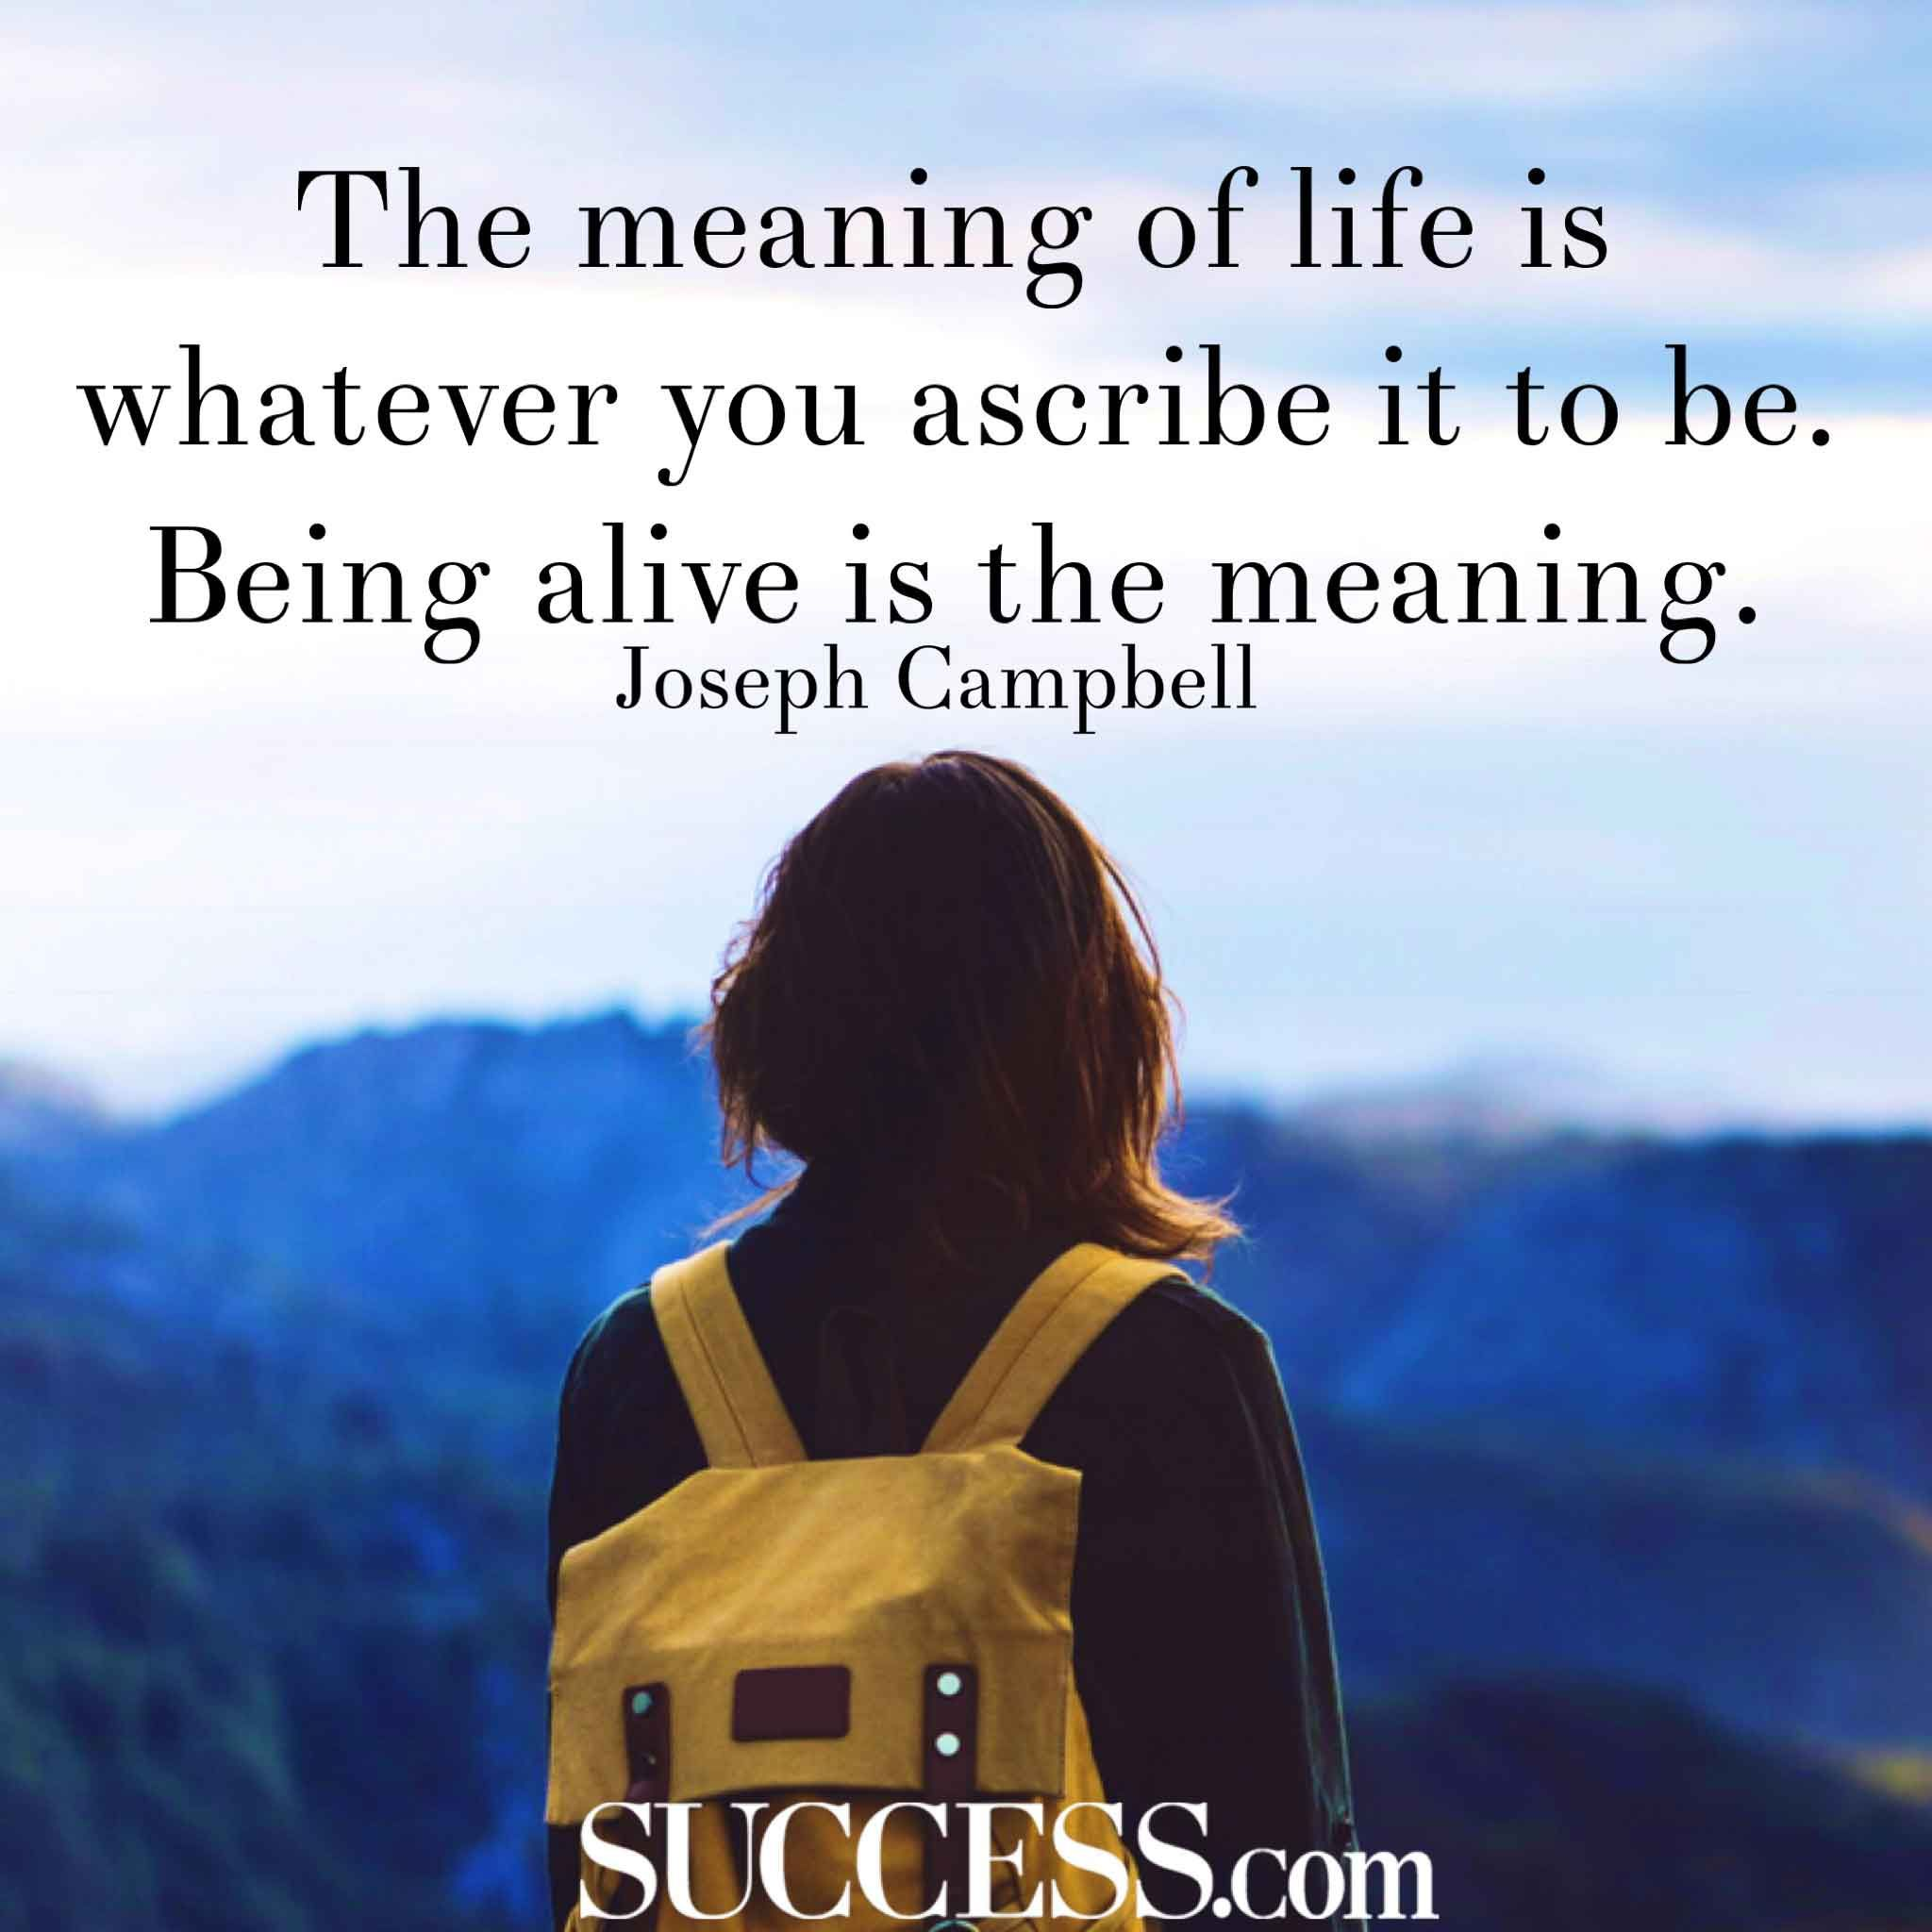 Meaning Of Life Quotes Fair The Meaning Of Life In 15 Wise Quotes  Success  Self Help